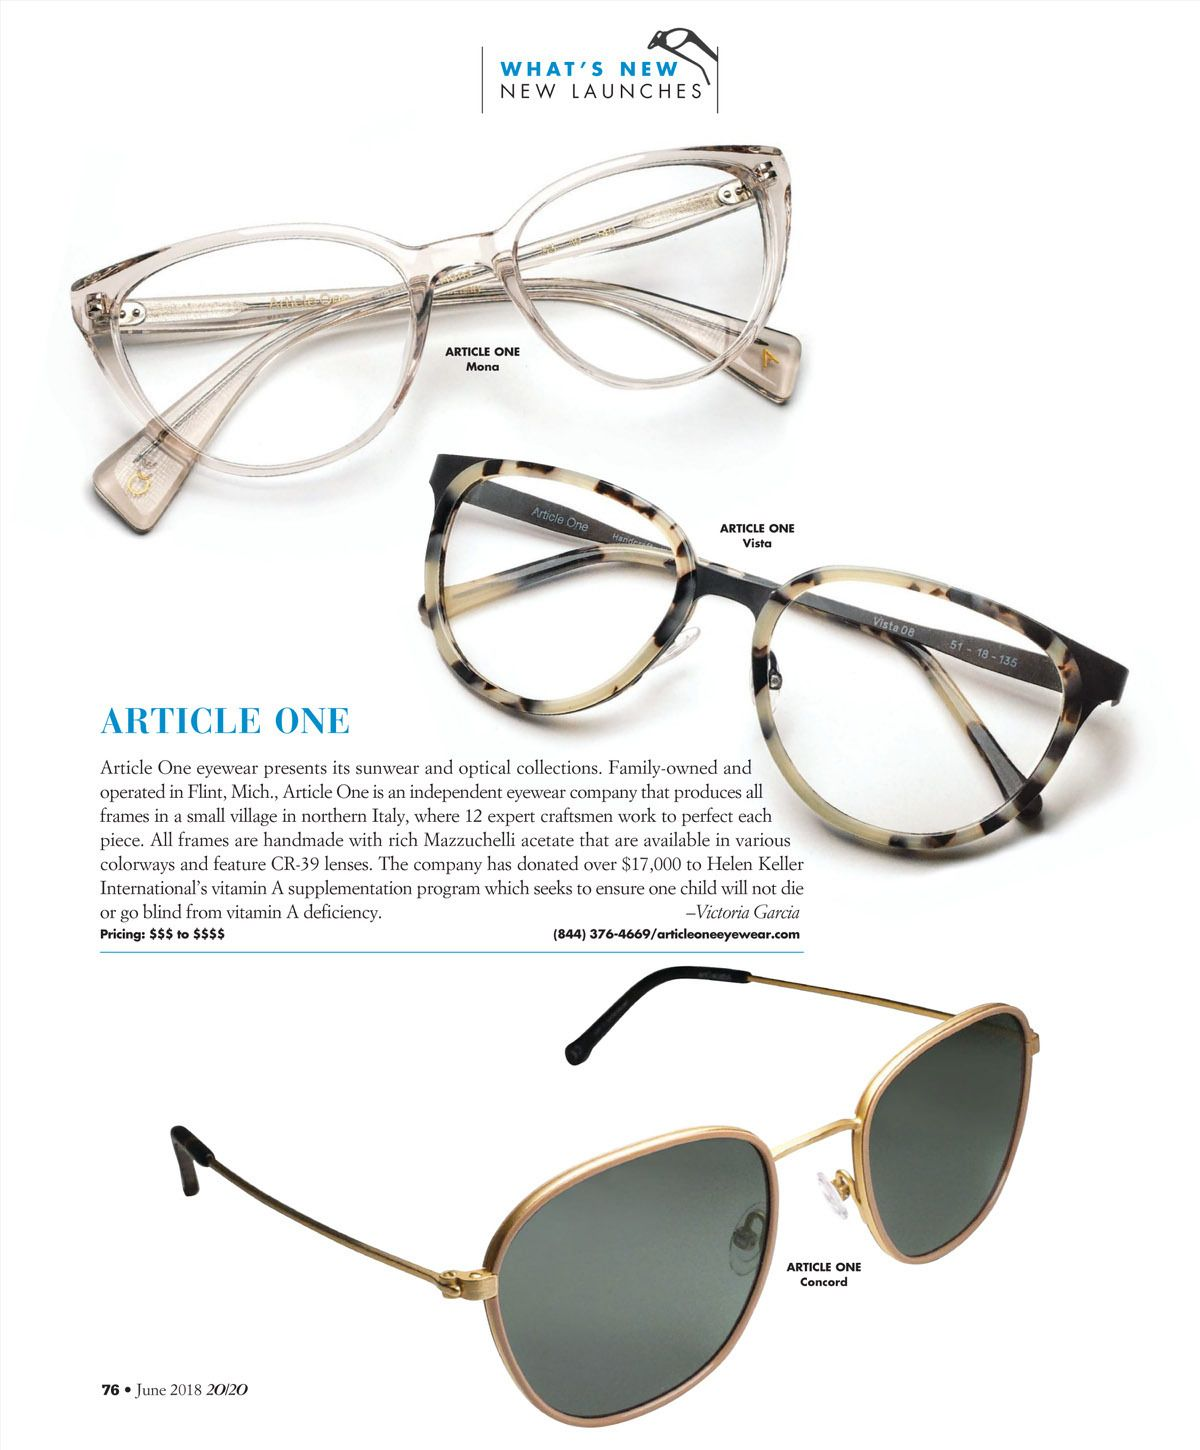 38b6fe48d82 CAZAL 7058 from Eastern States Eyewear and Ultra Palm Optical ...